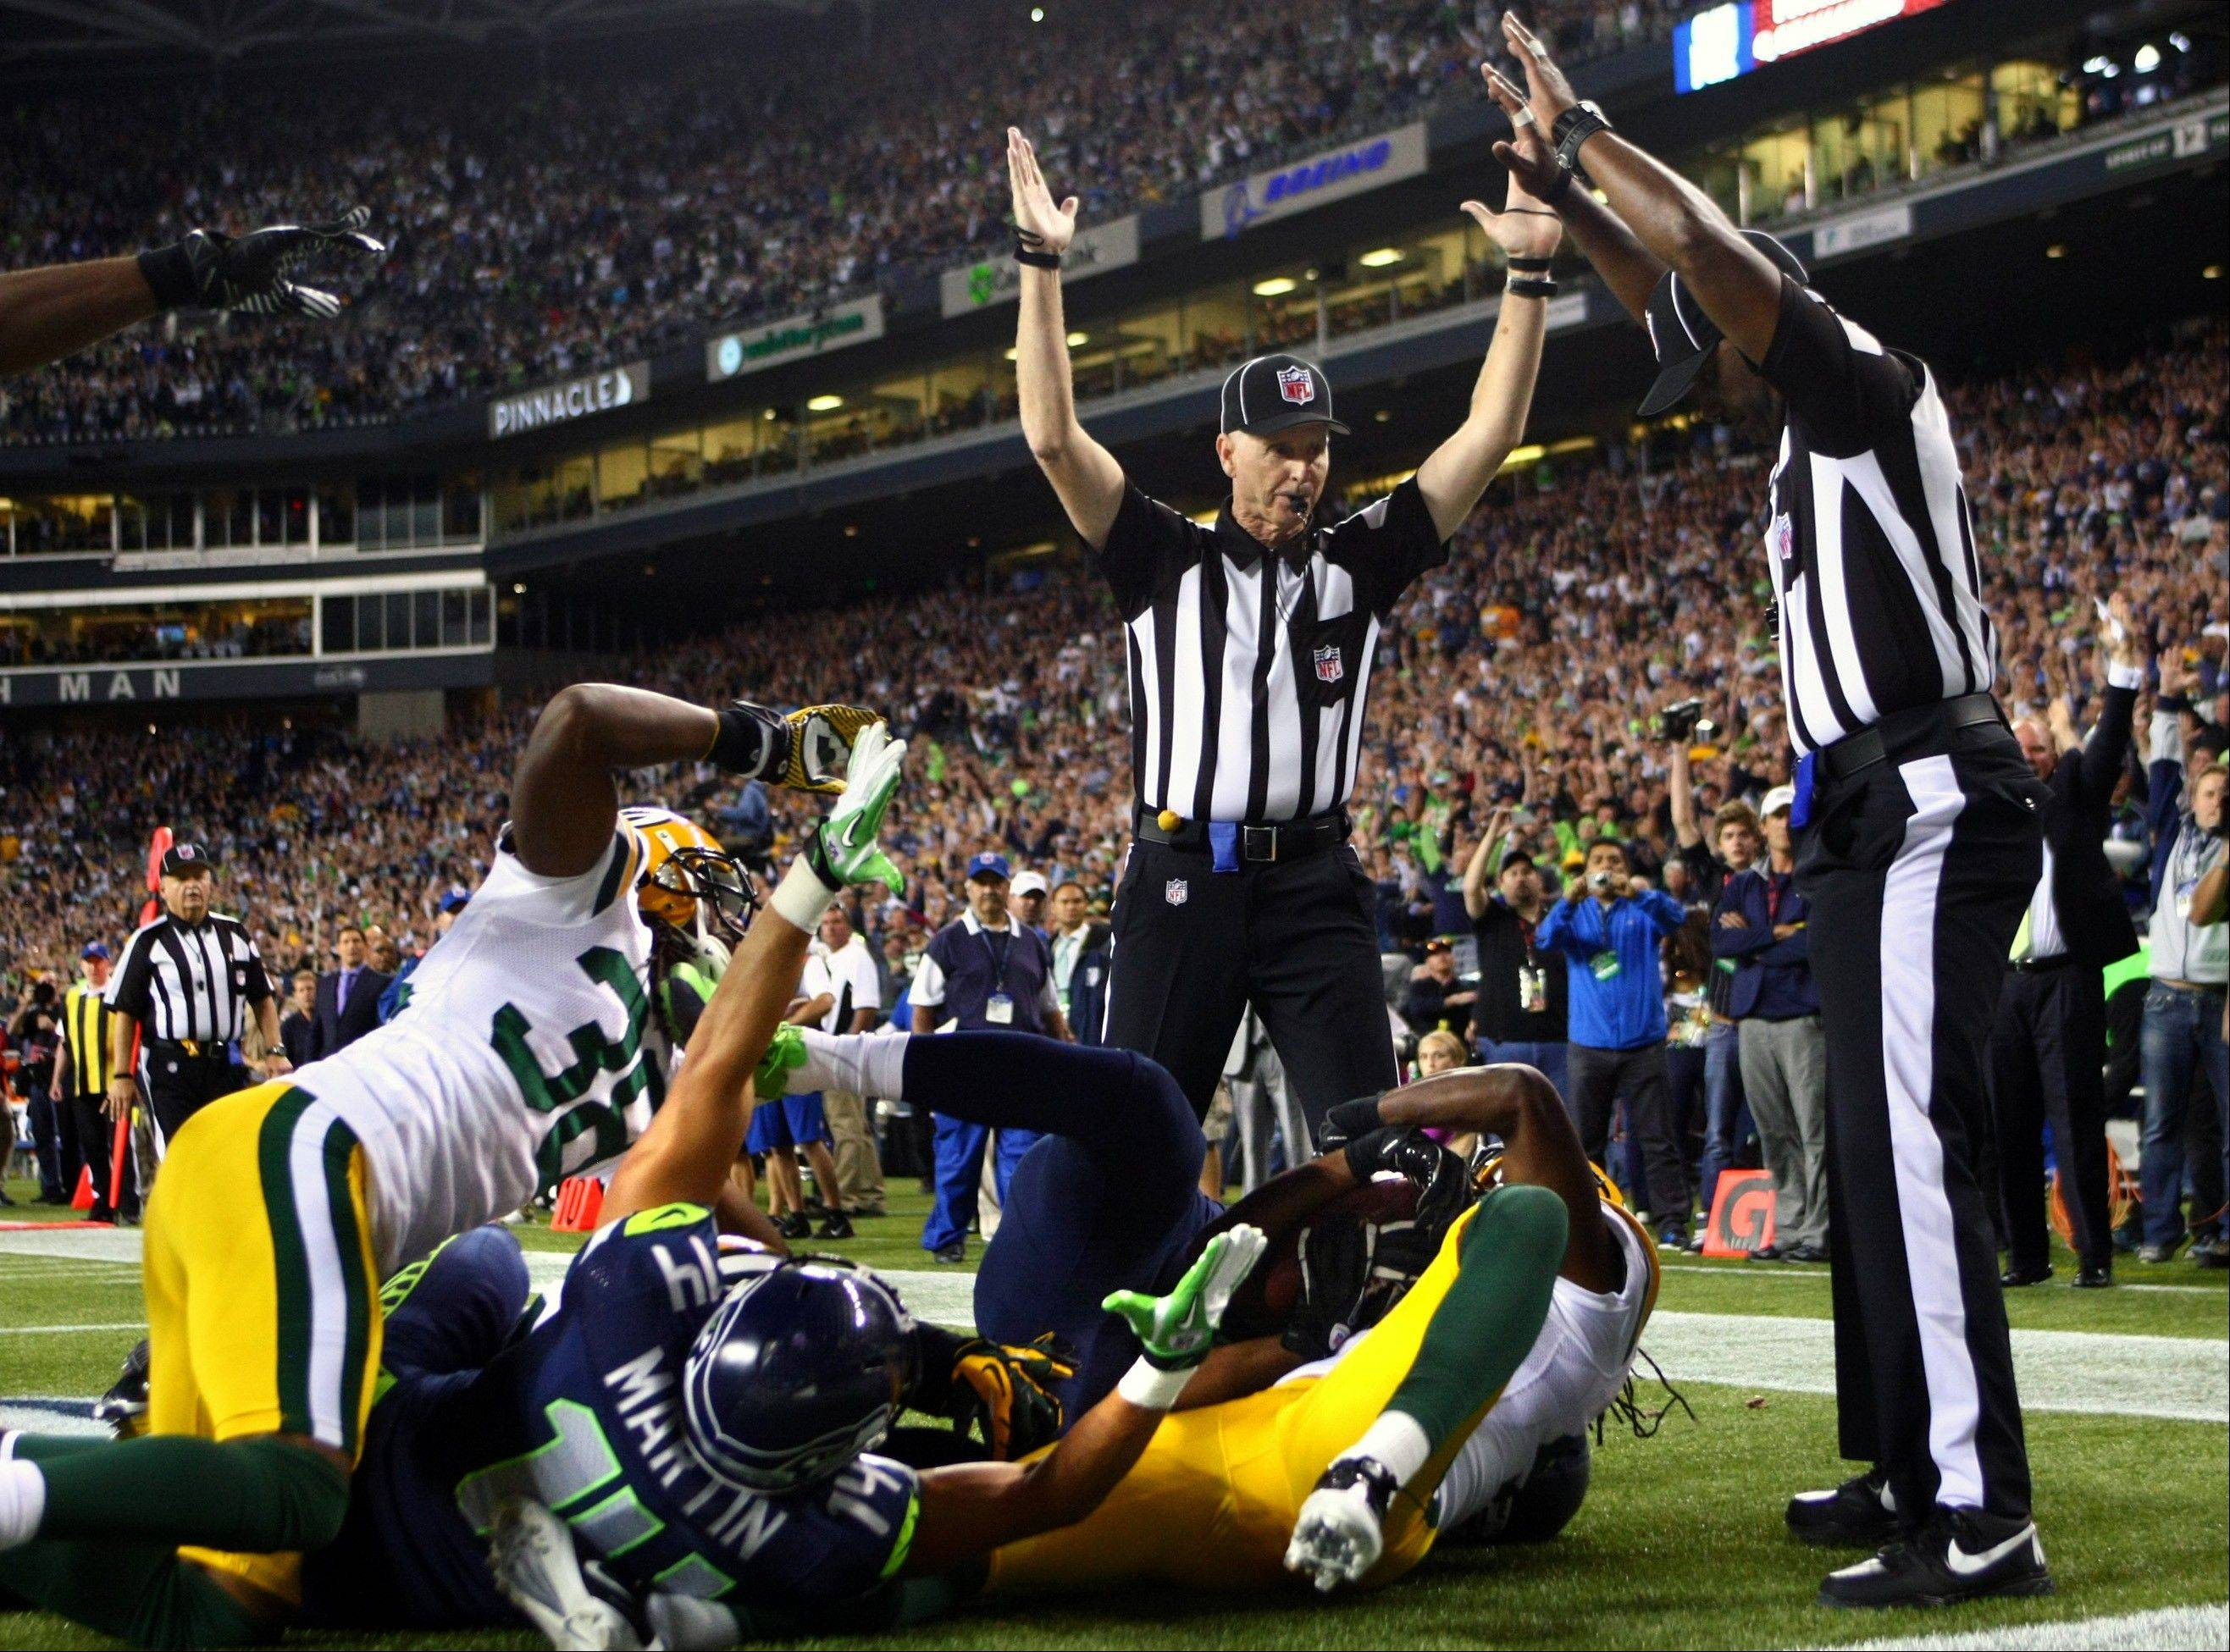 Officials signal a touchdown and a touchback after Seattle Seahawks wide receiver Golden Tate pulled in a last-second pass for a touchdown from quarterback Russell Wilson to defeat the Green Bay Packers 14-12 Monday night. On Wednesday, the NFL and the referees' union appeared on the brink of ending a three-month stalemate, two days after the Green Bay Packers lost a game they would have won if not for a less adept crew of replacement officials.